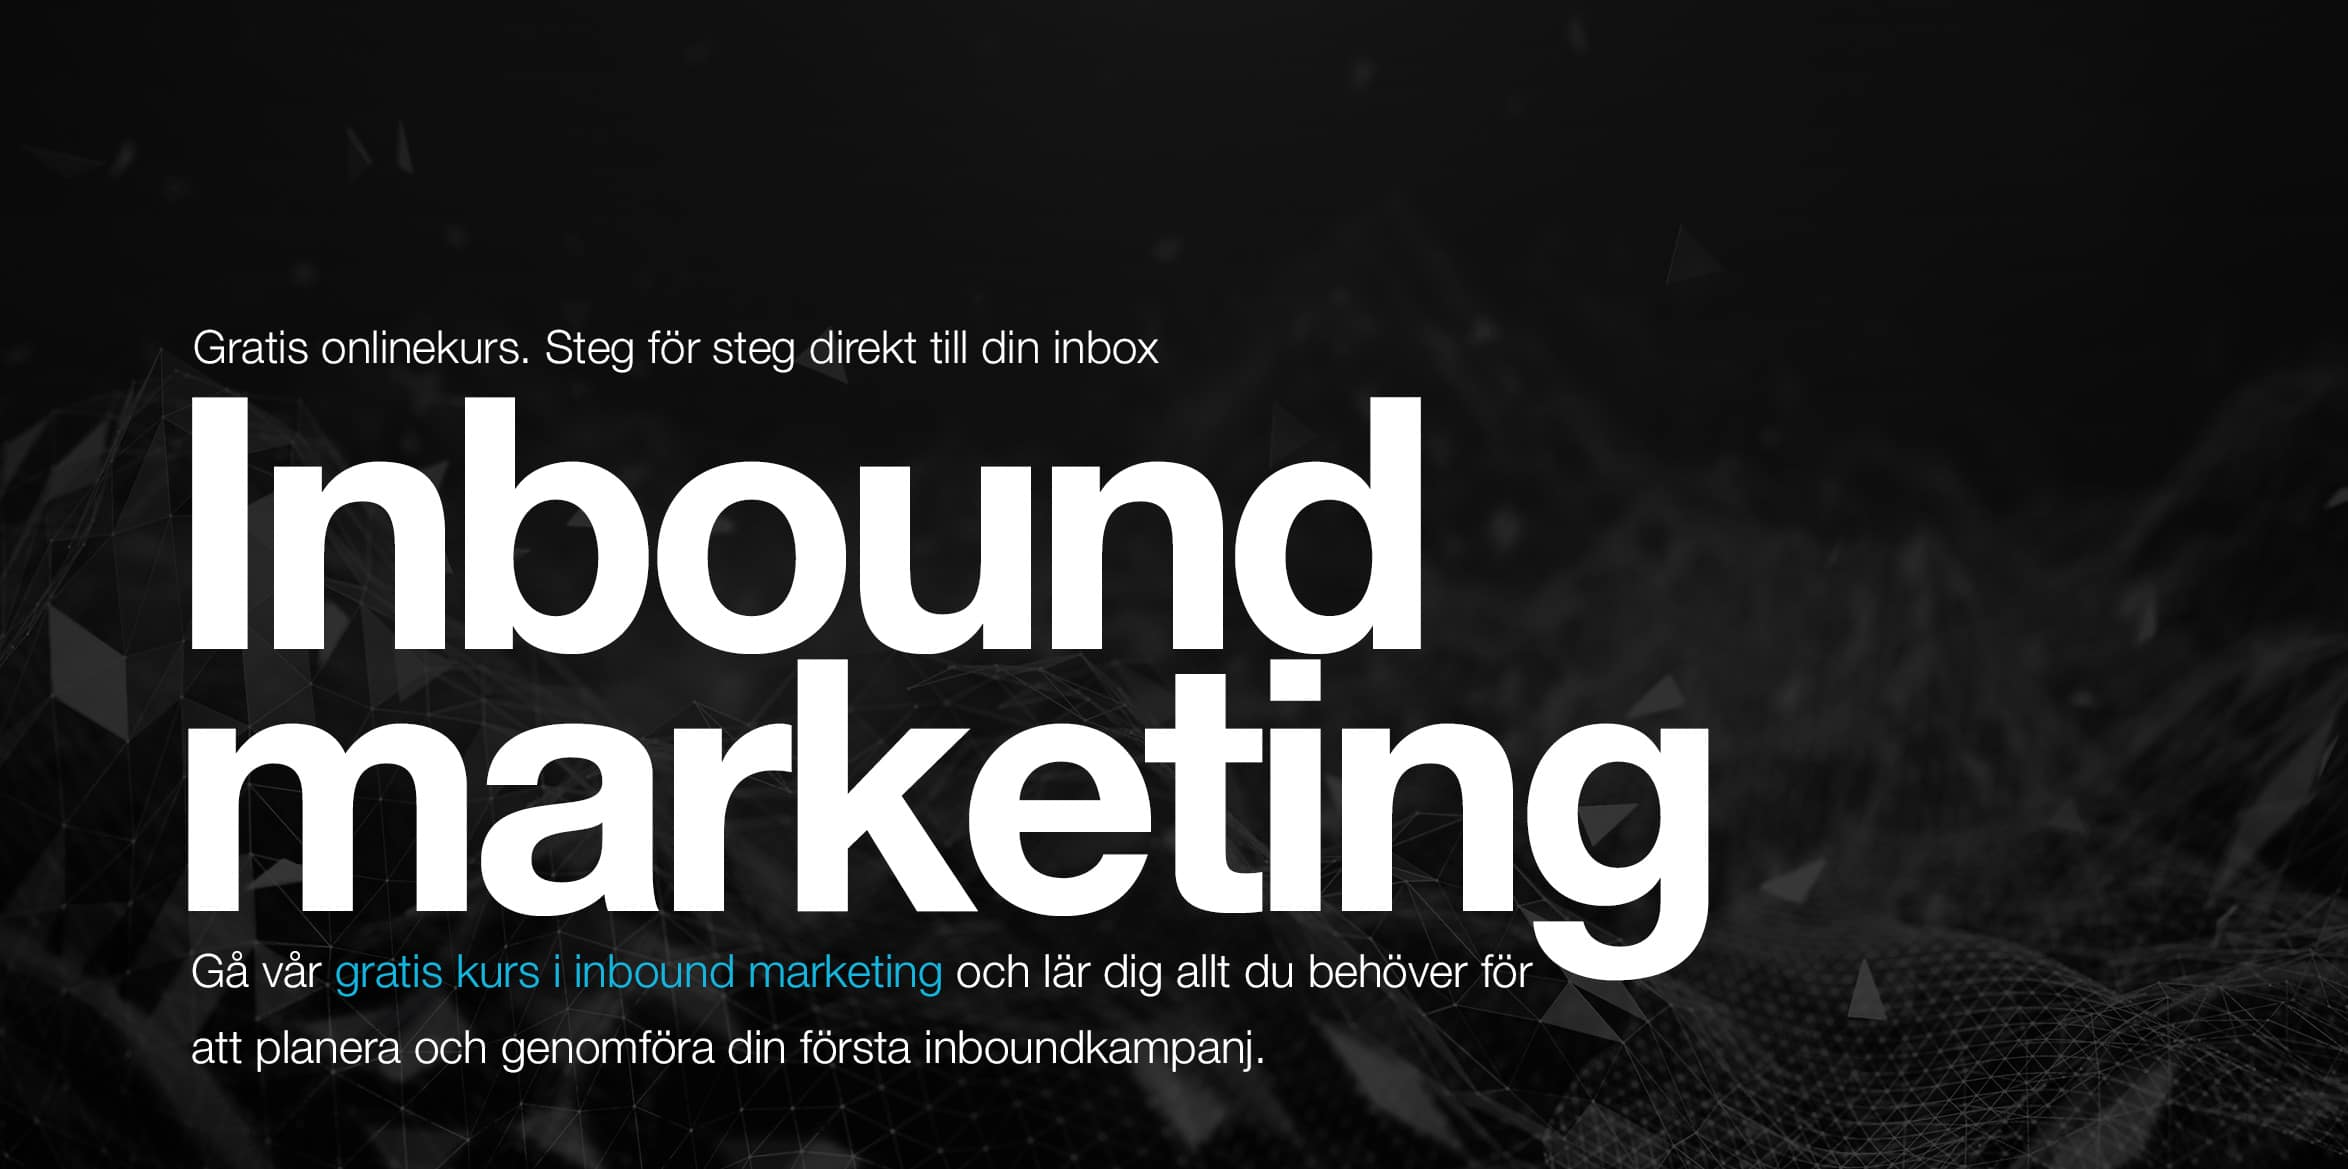 inbound marketing utbildning svenska